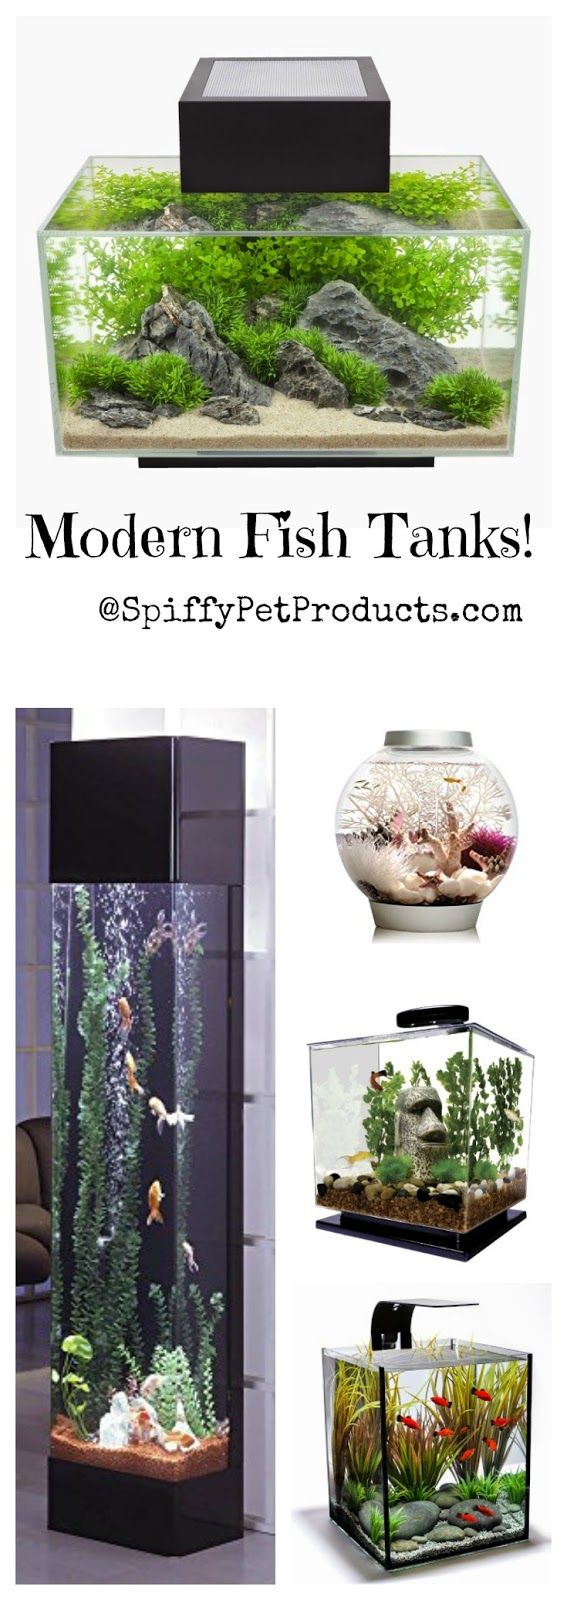 Cool Aquariums For Sale The 25 Best Modern Fish Tank Ideas On Pinterest Amazing Fish